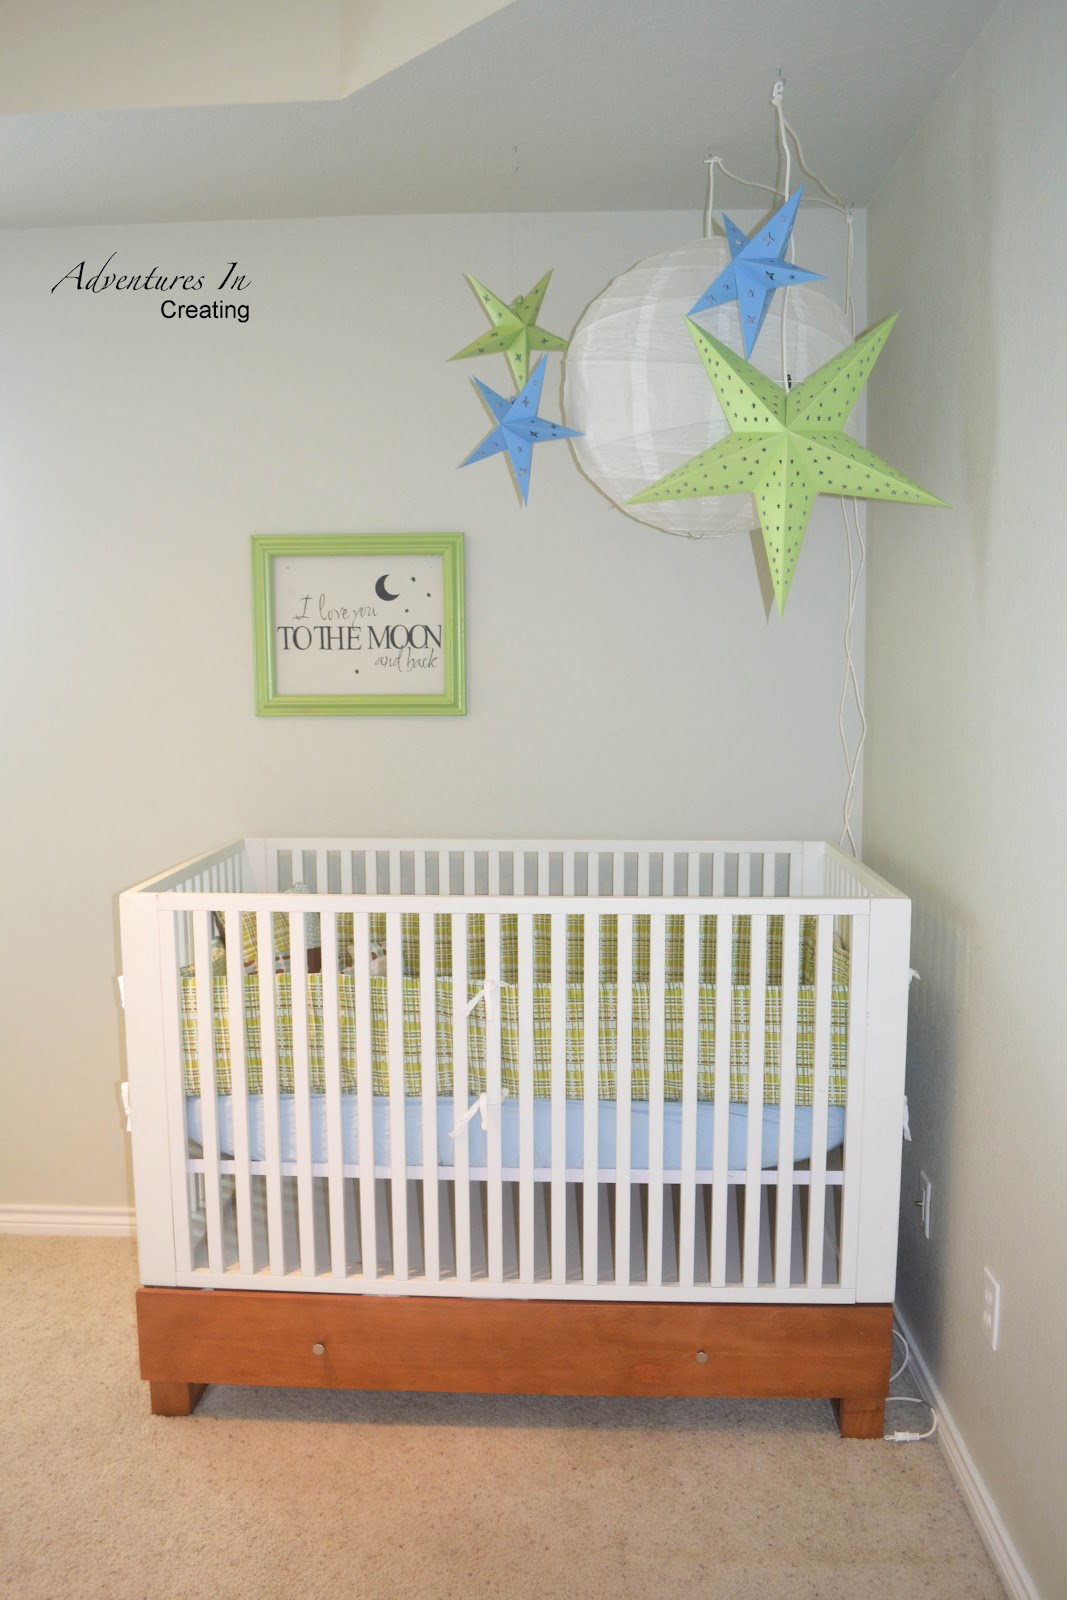 adventures in creating a nursery that 39 s over the moon. Black Bedroom Furniture Sets. Home Design Ideas